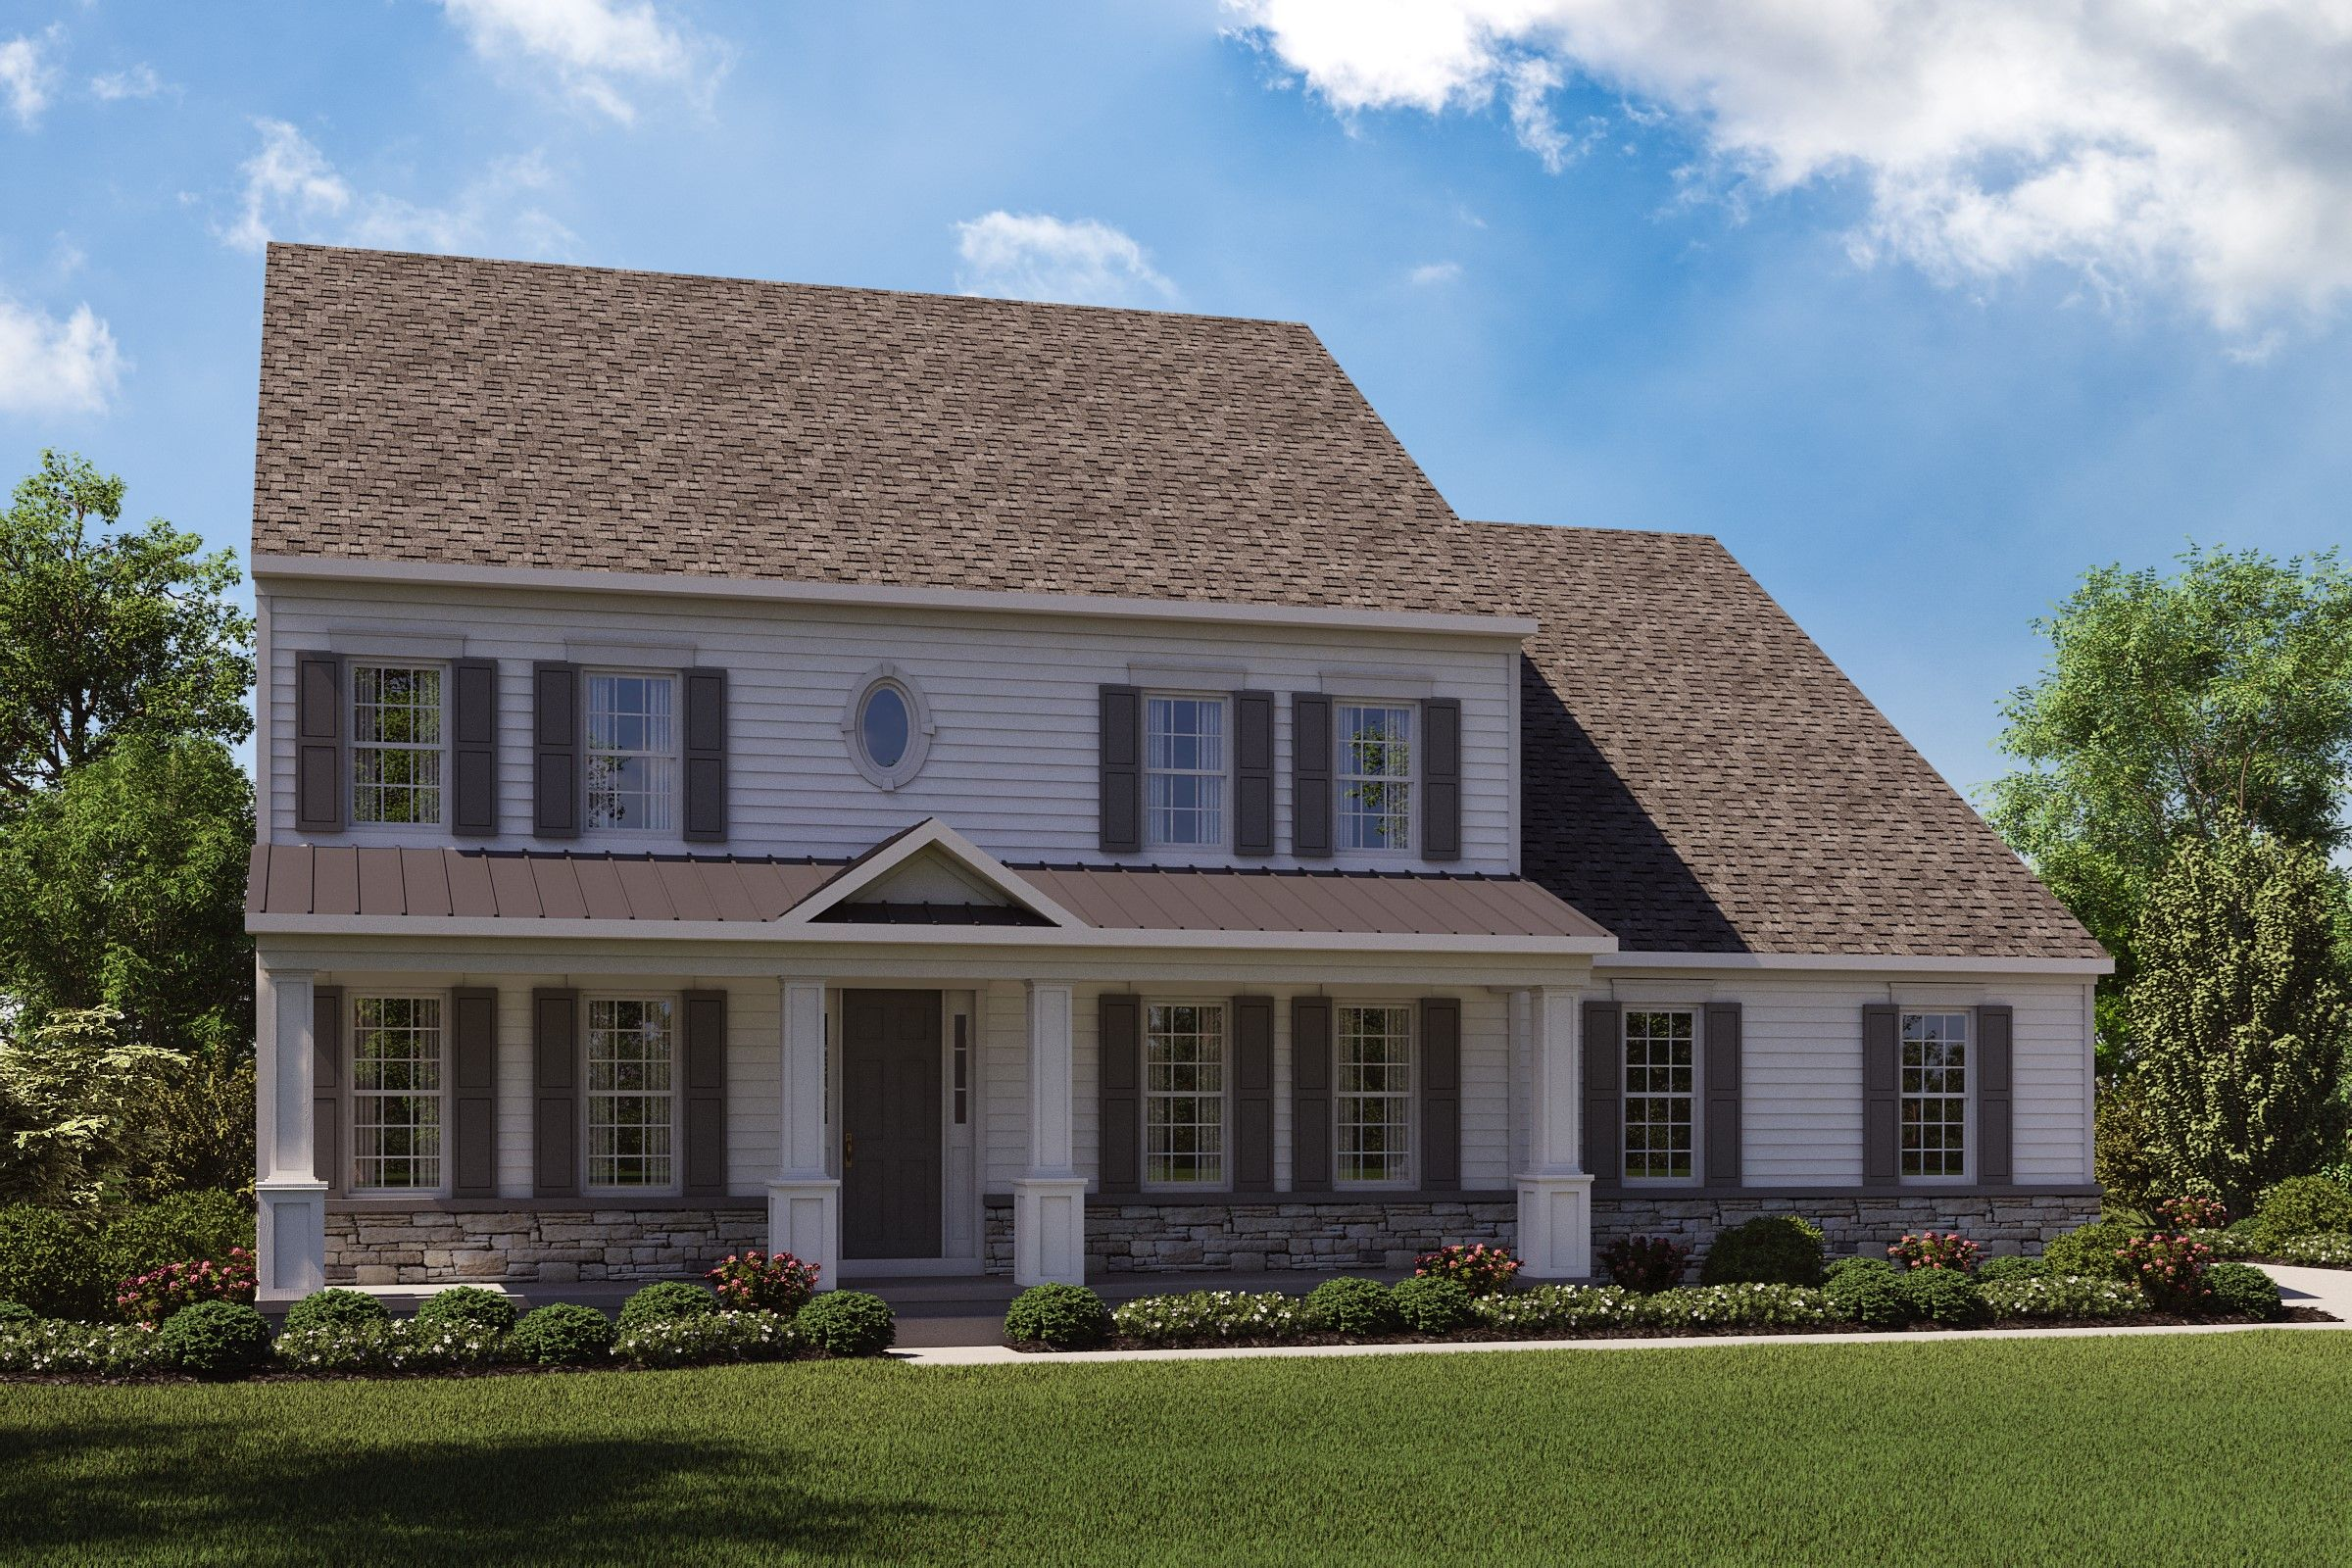 Single Family for Sale at Tanglewood Estates At Chapel Hill - Davinci 414 Kings Highway East Middletown, New Jersey 07748 United States